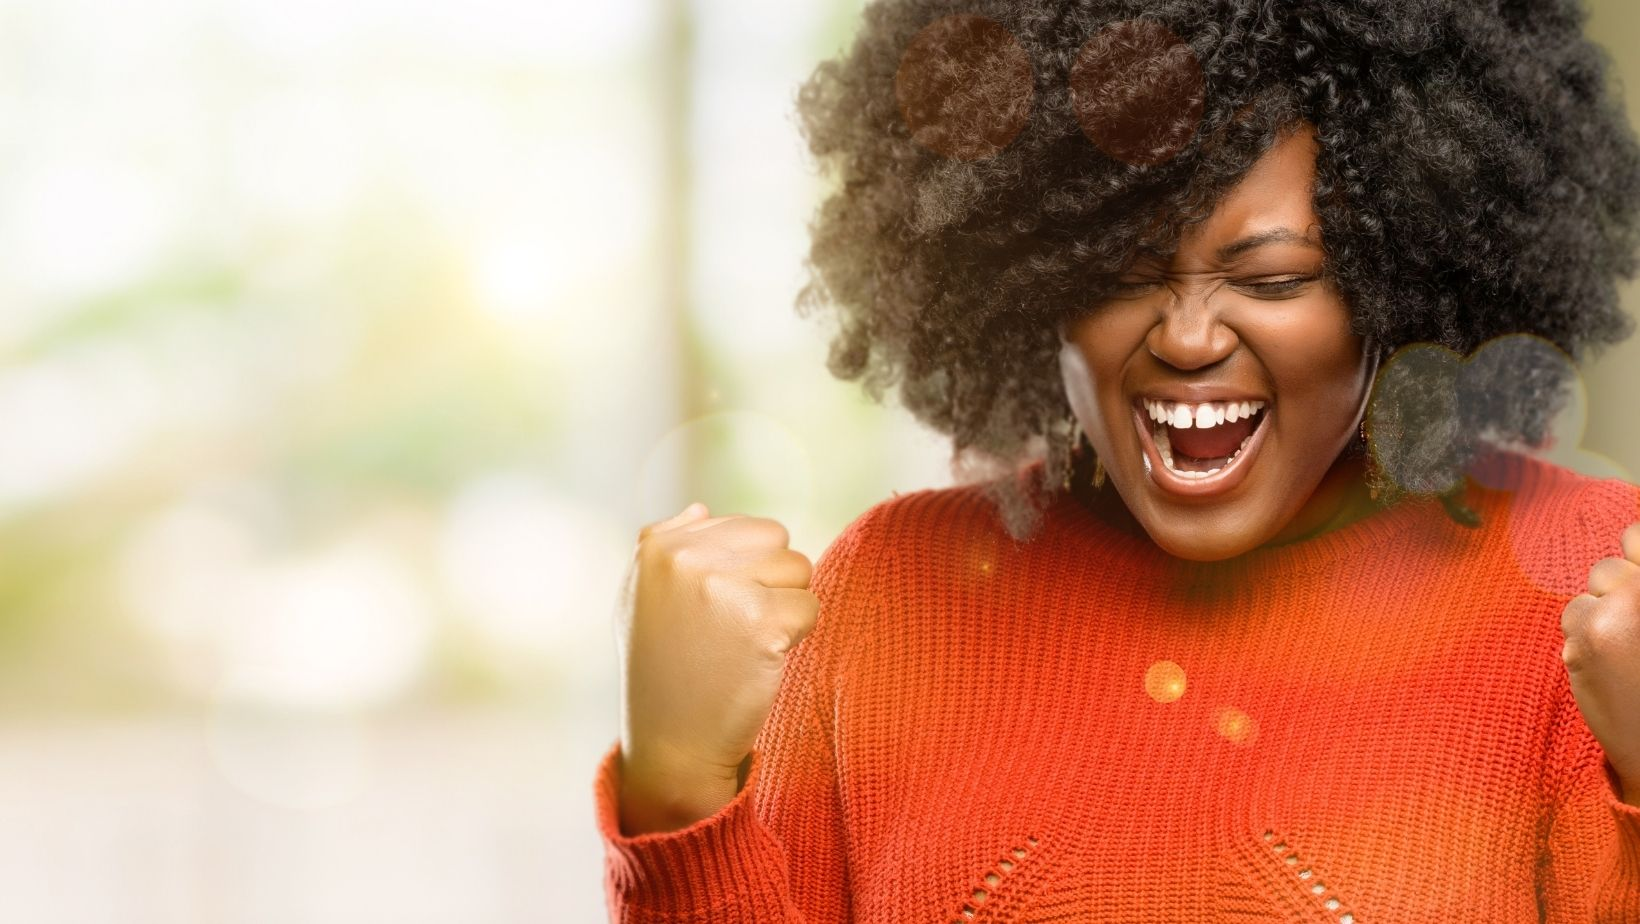 Photo of woman celebrating to illustrate entry level jobs.